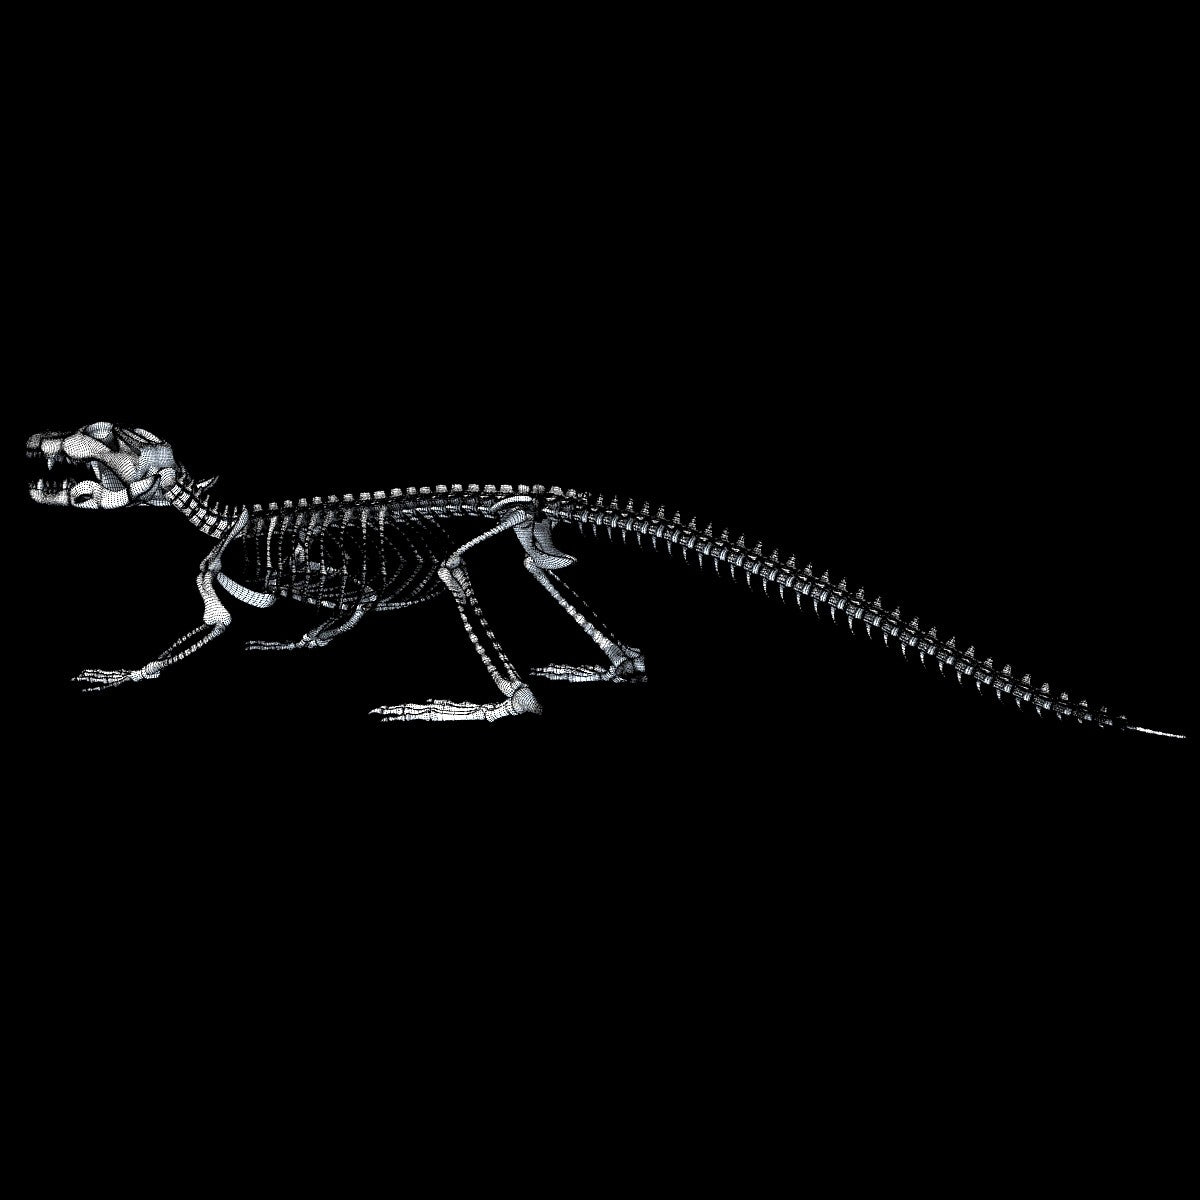 Crocodile Skeleton 3D Model